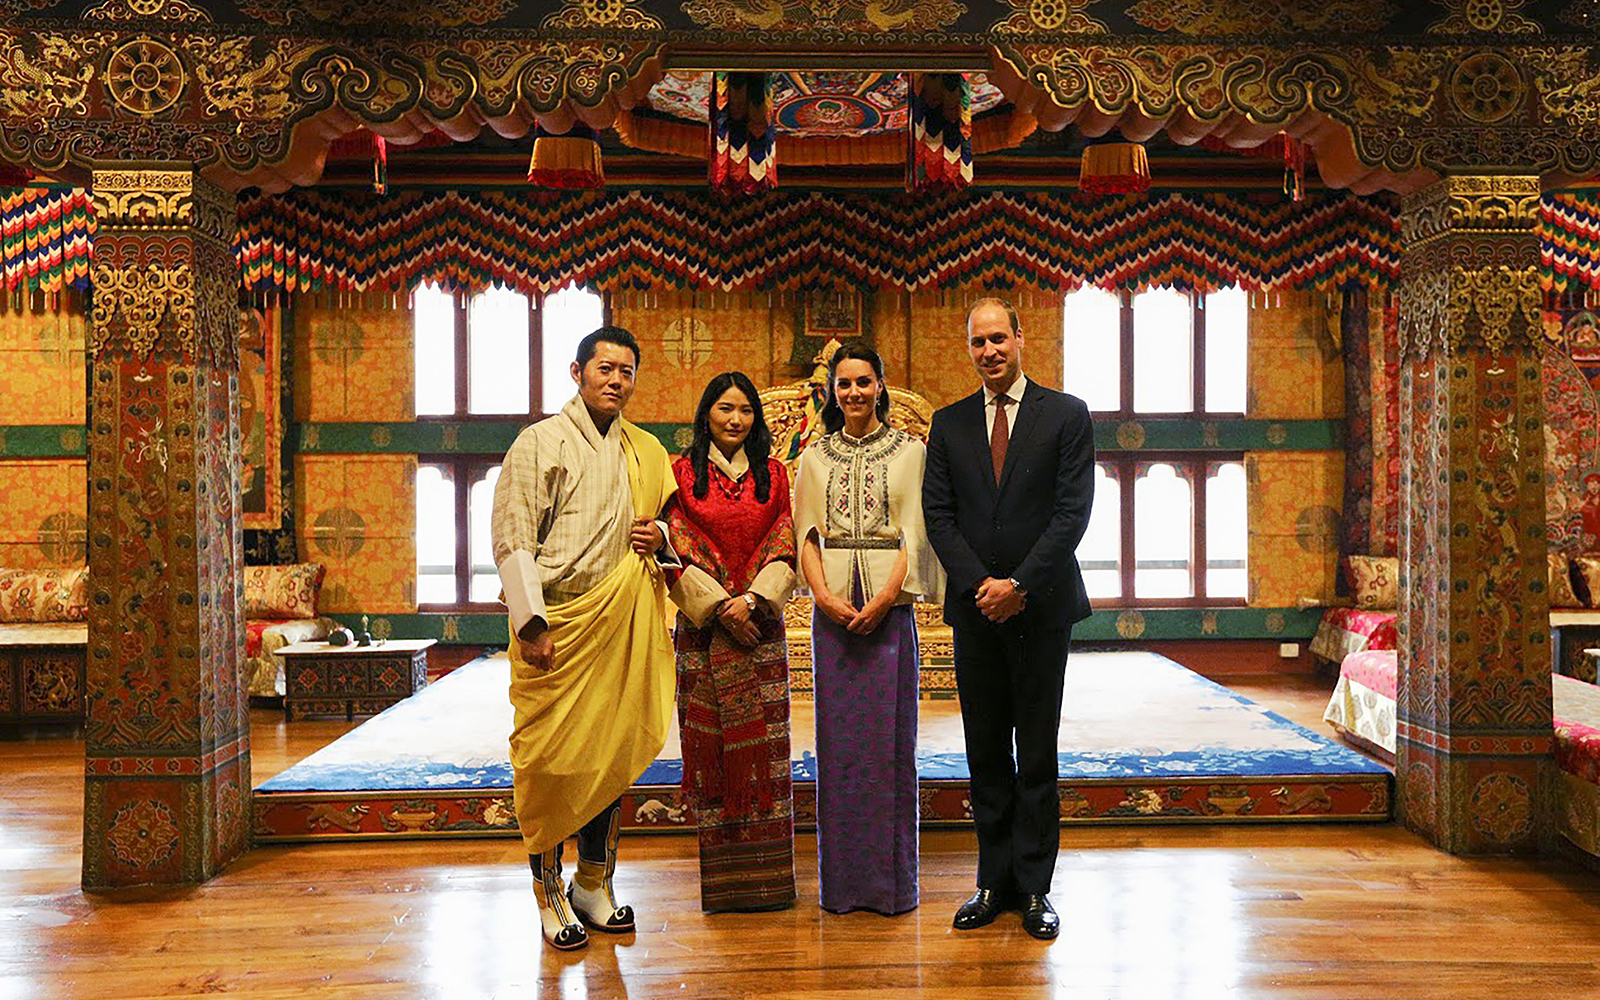 Prince William and Kate Middleton Embark on their Royal Tour of India and Bhutan: Visiting a Buddhist Temple